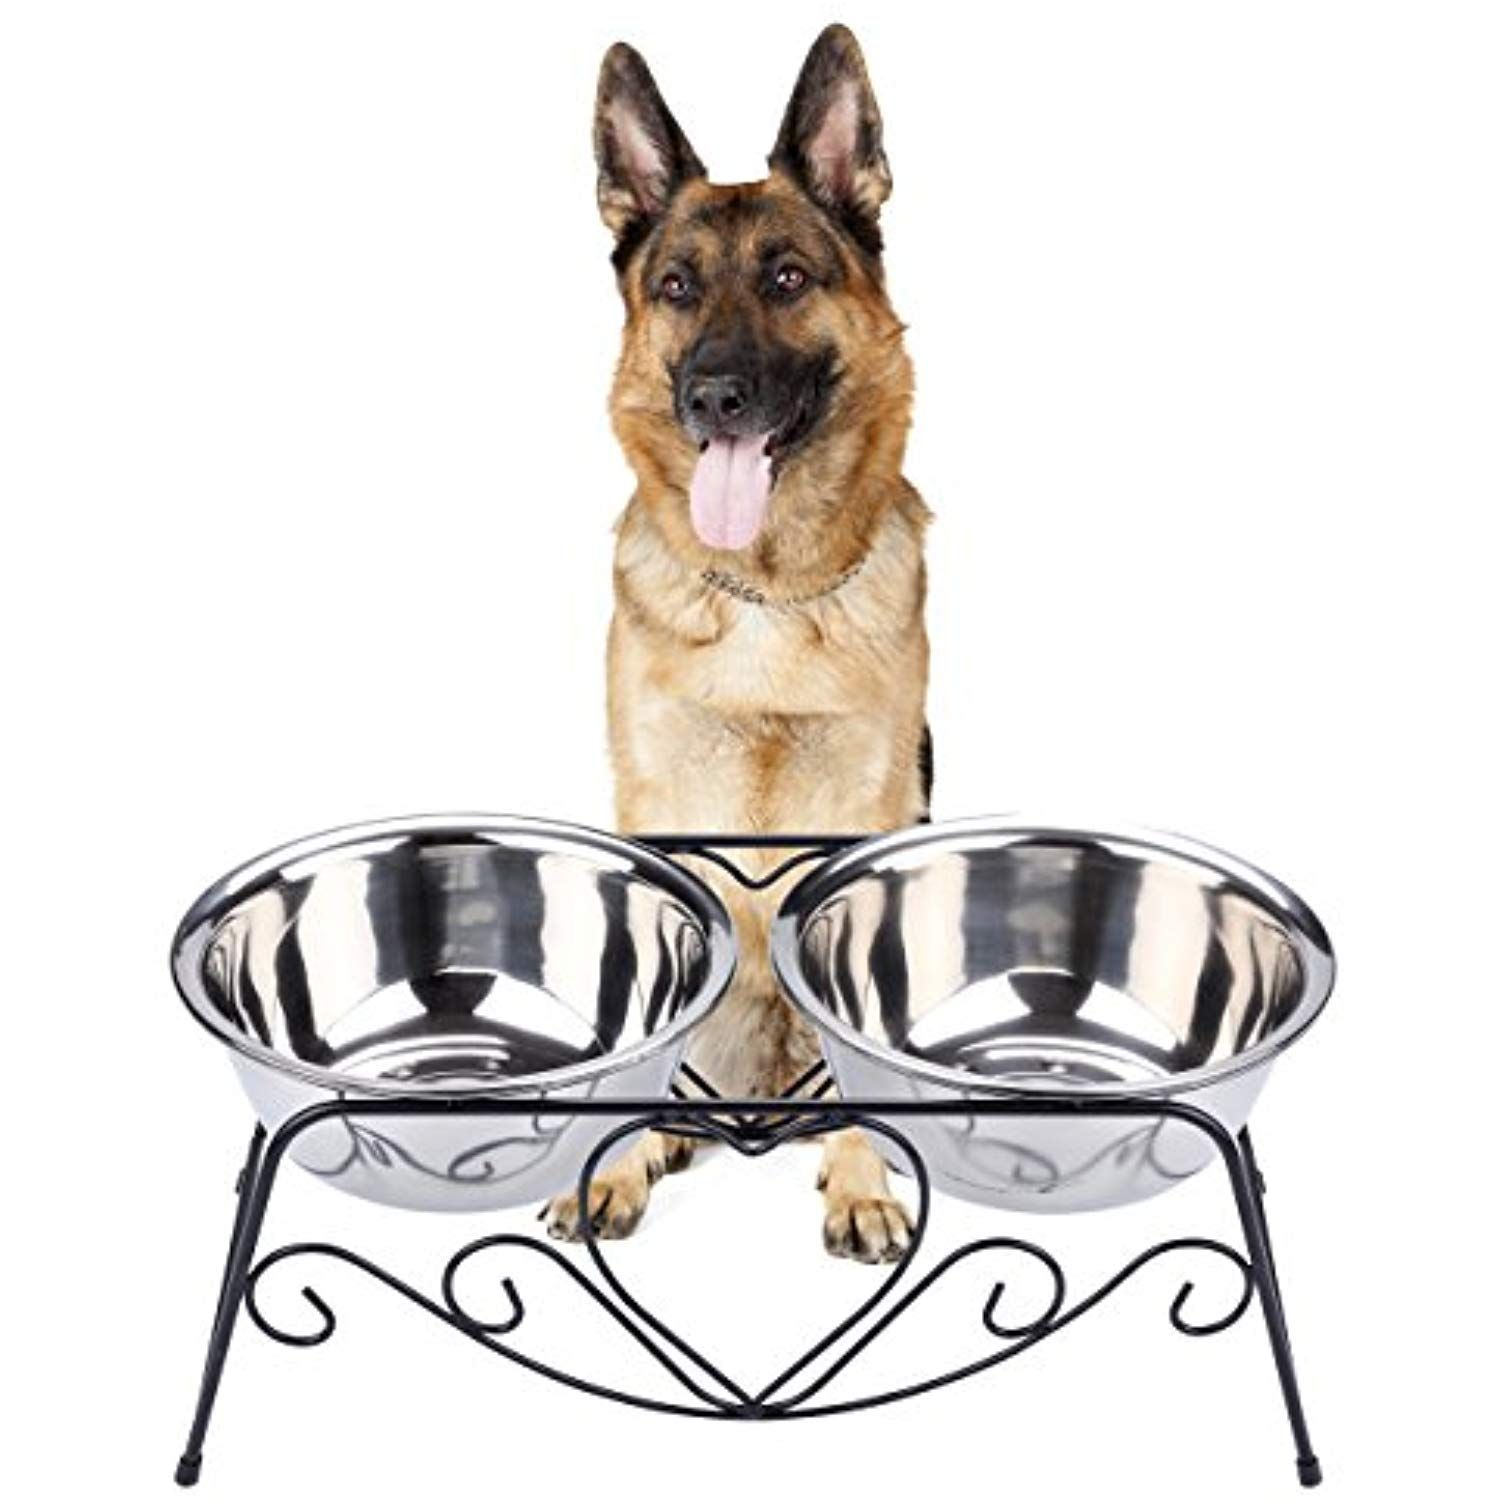 Cico pet feeder for dog cat stainless steel food and